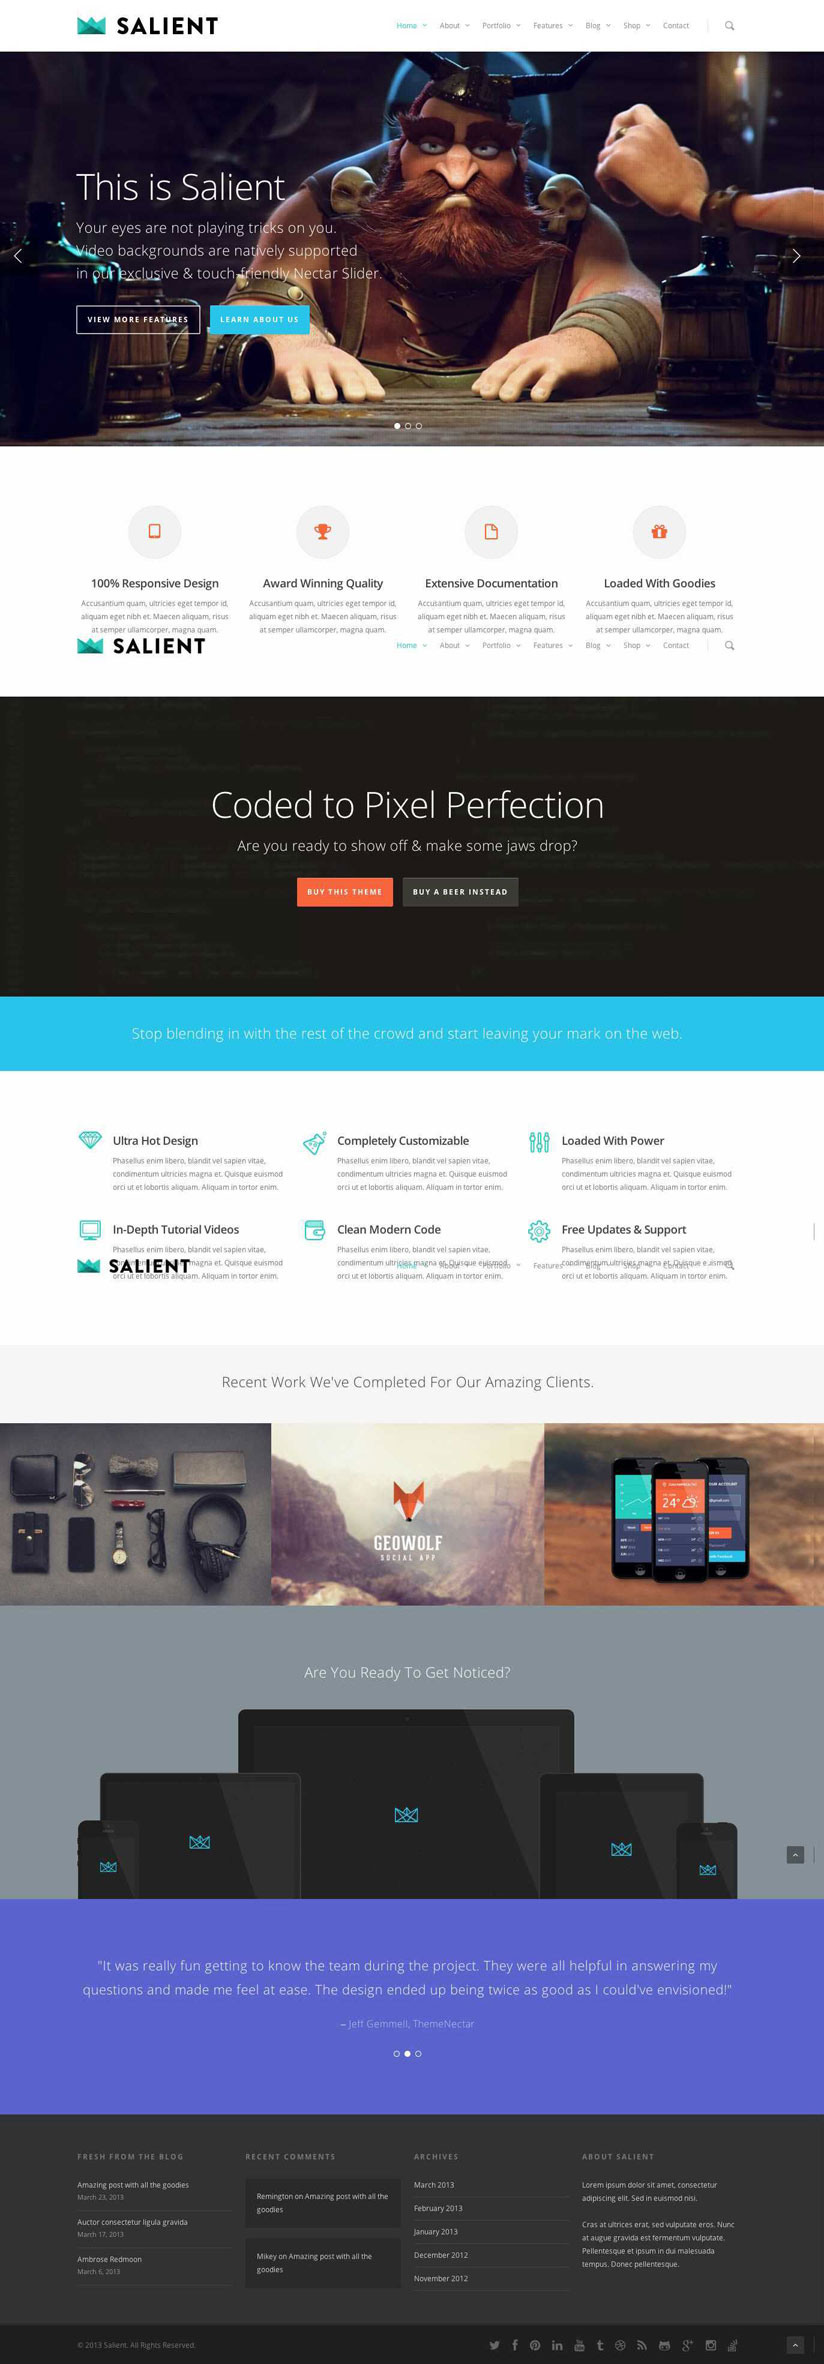 Salient WordPress Theme Review and Preview